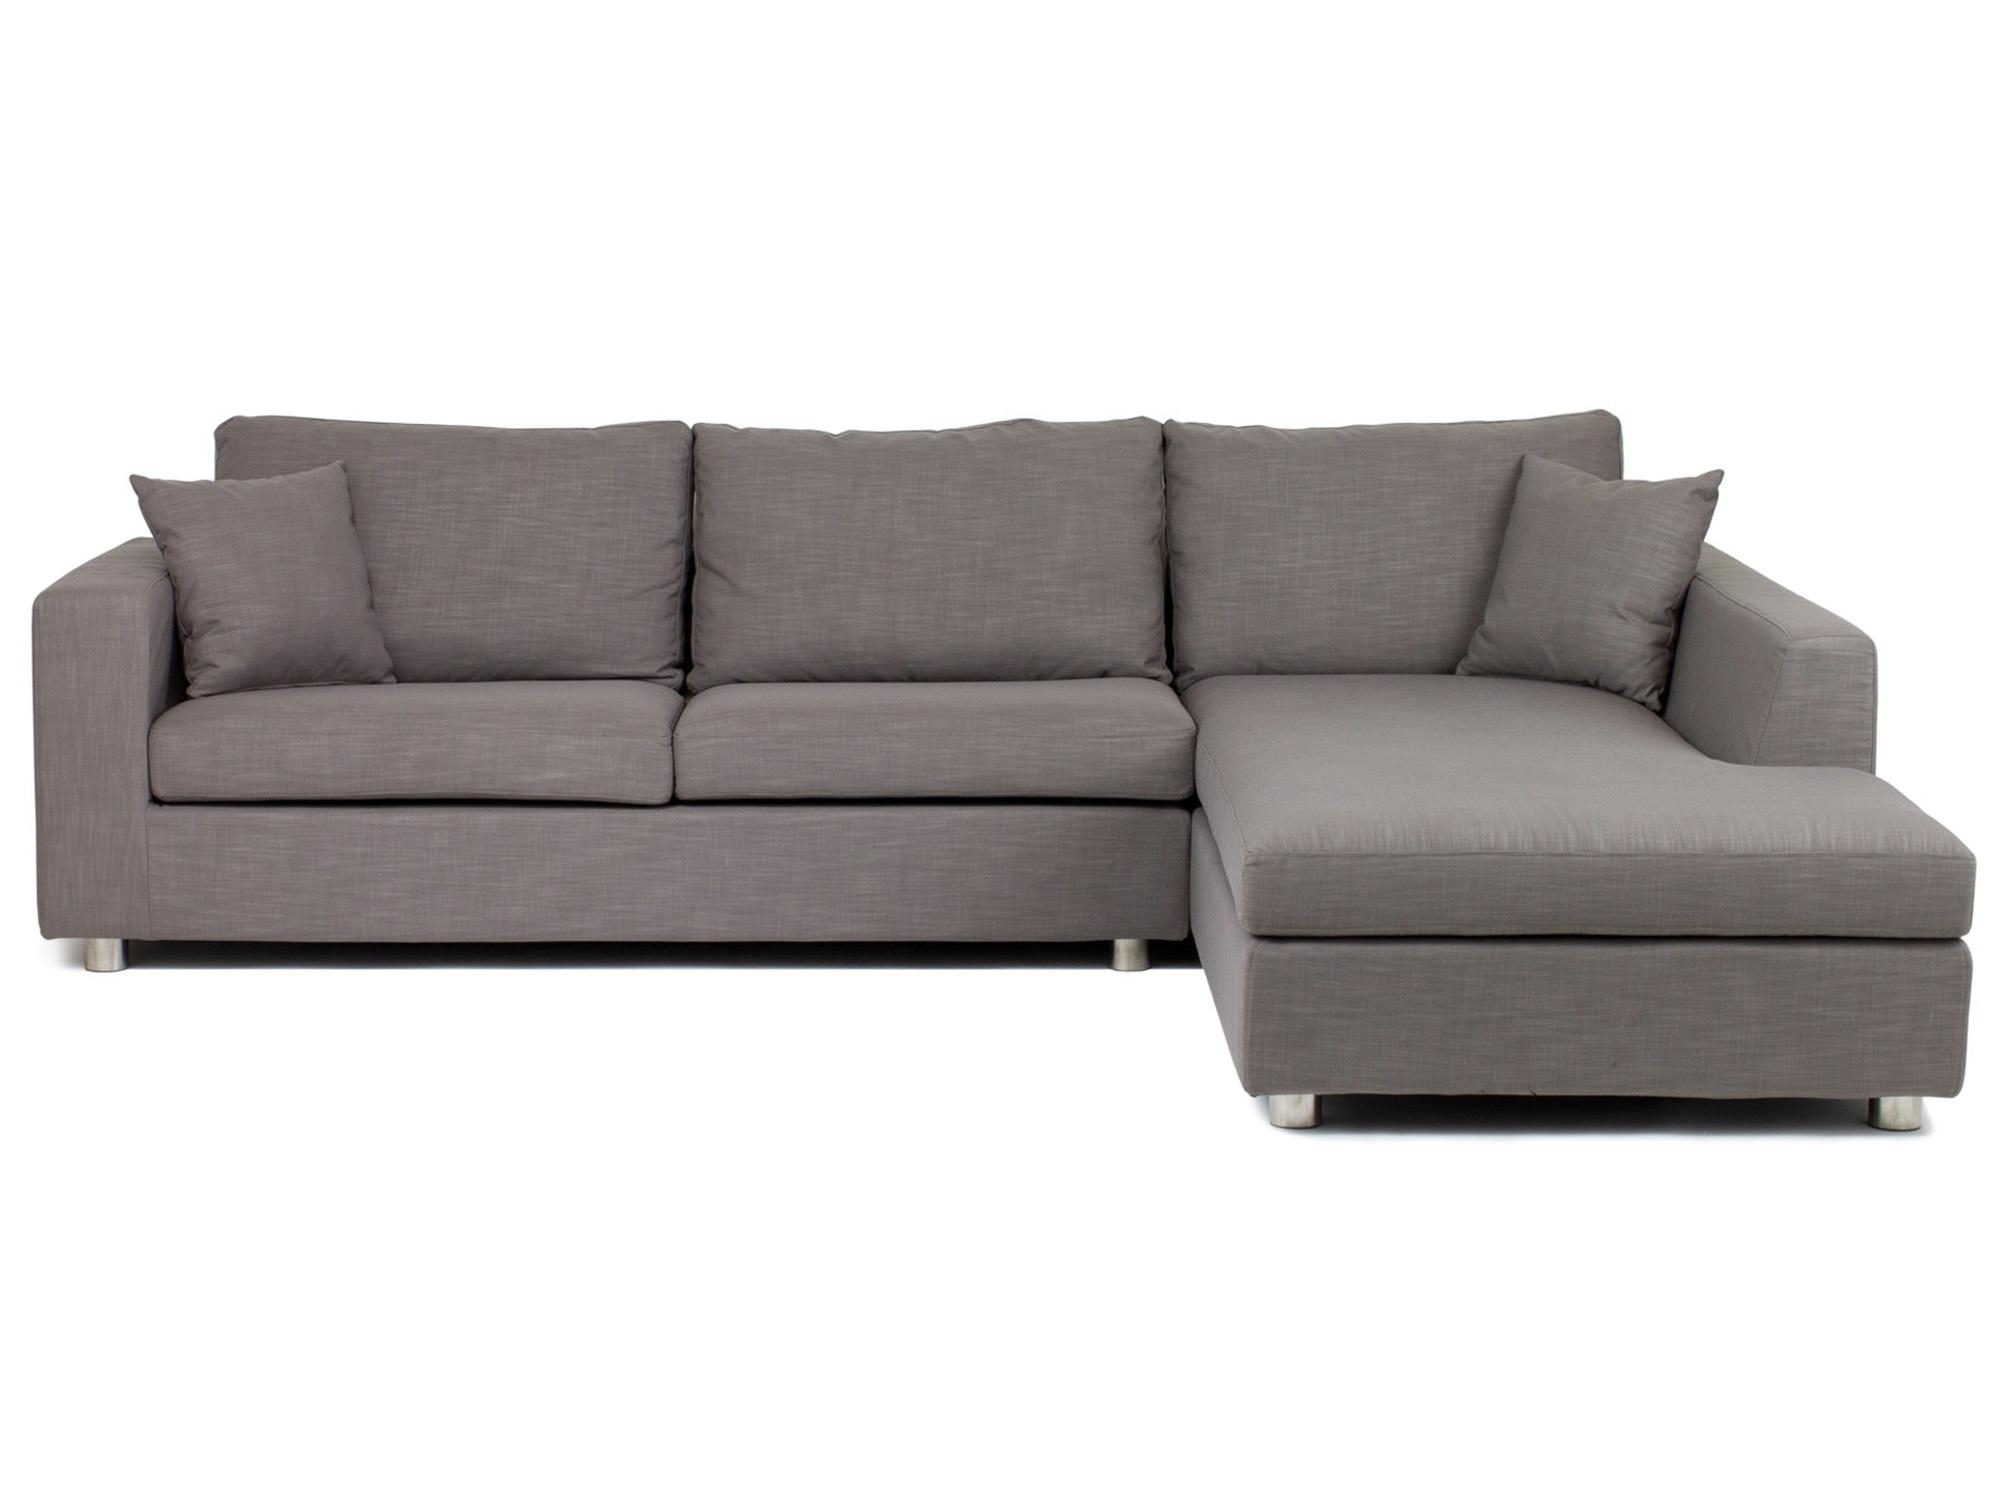 Sofas: Chaise Sofa Bed | Corner Lounge With Sofa Bed & Chaise Regarding Chaise Sofas (View 10 of 20)